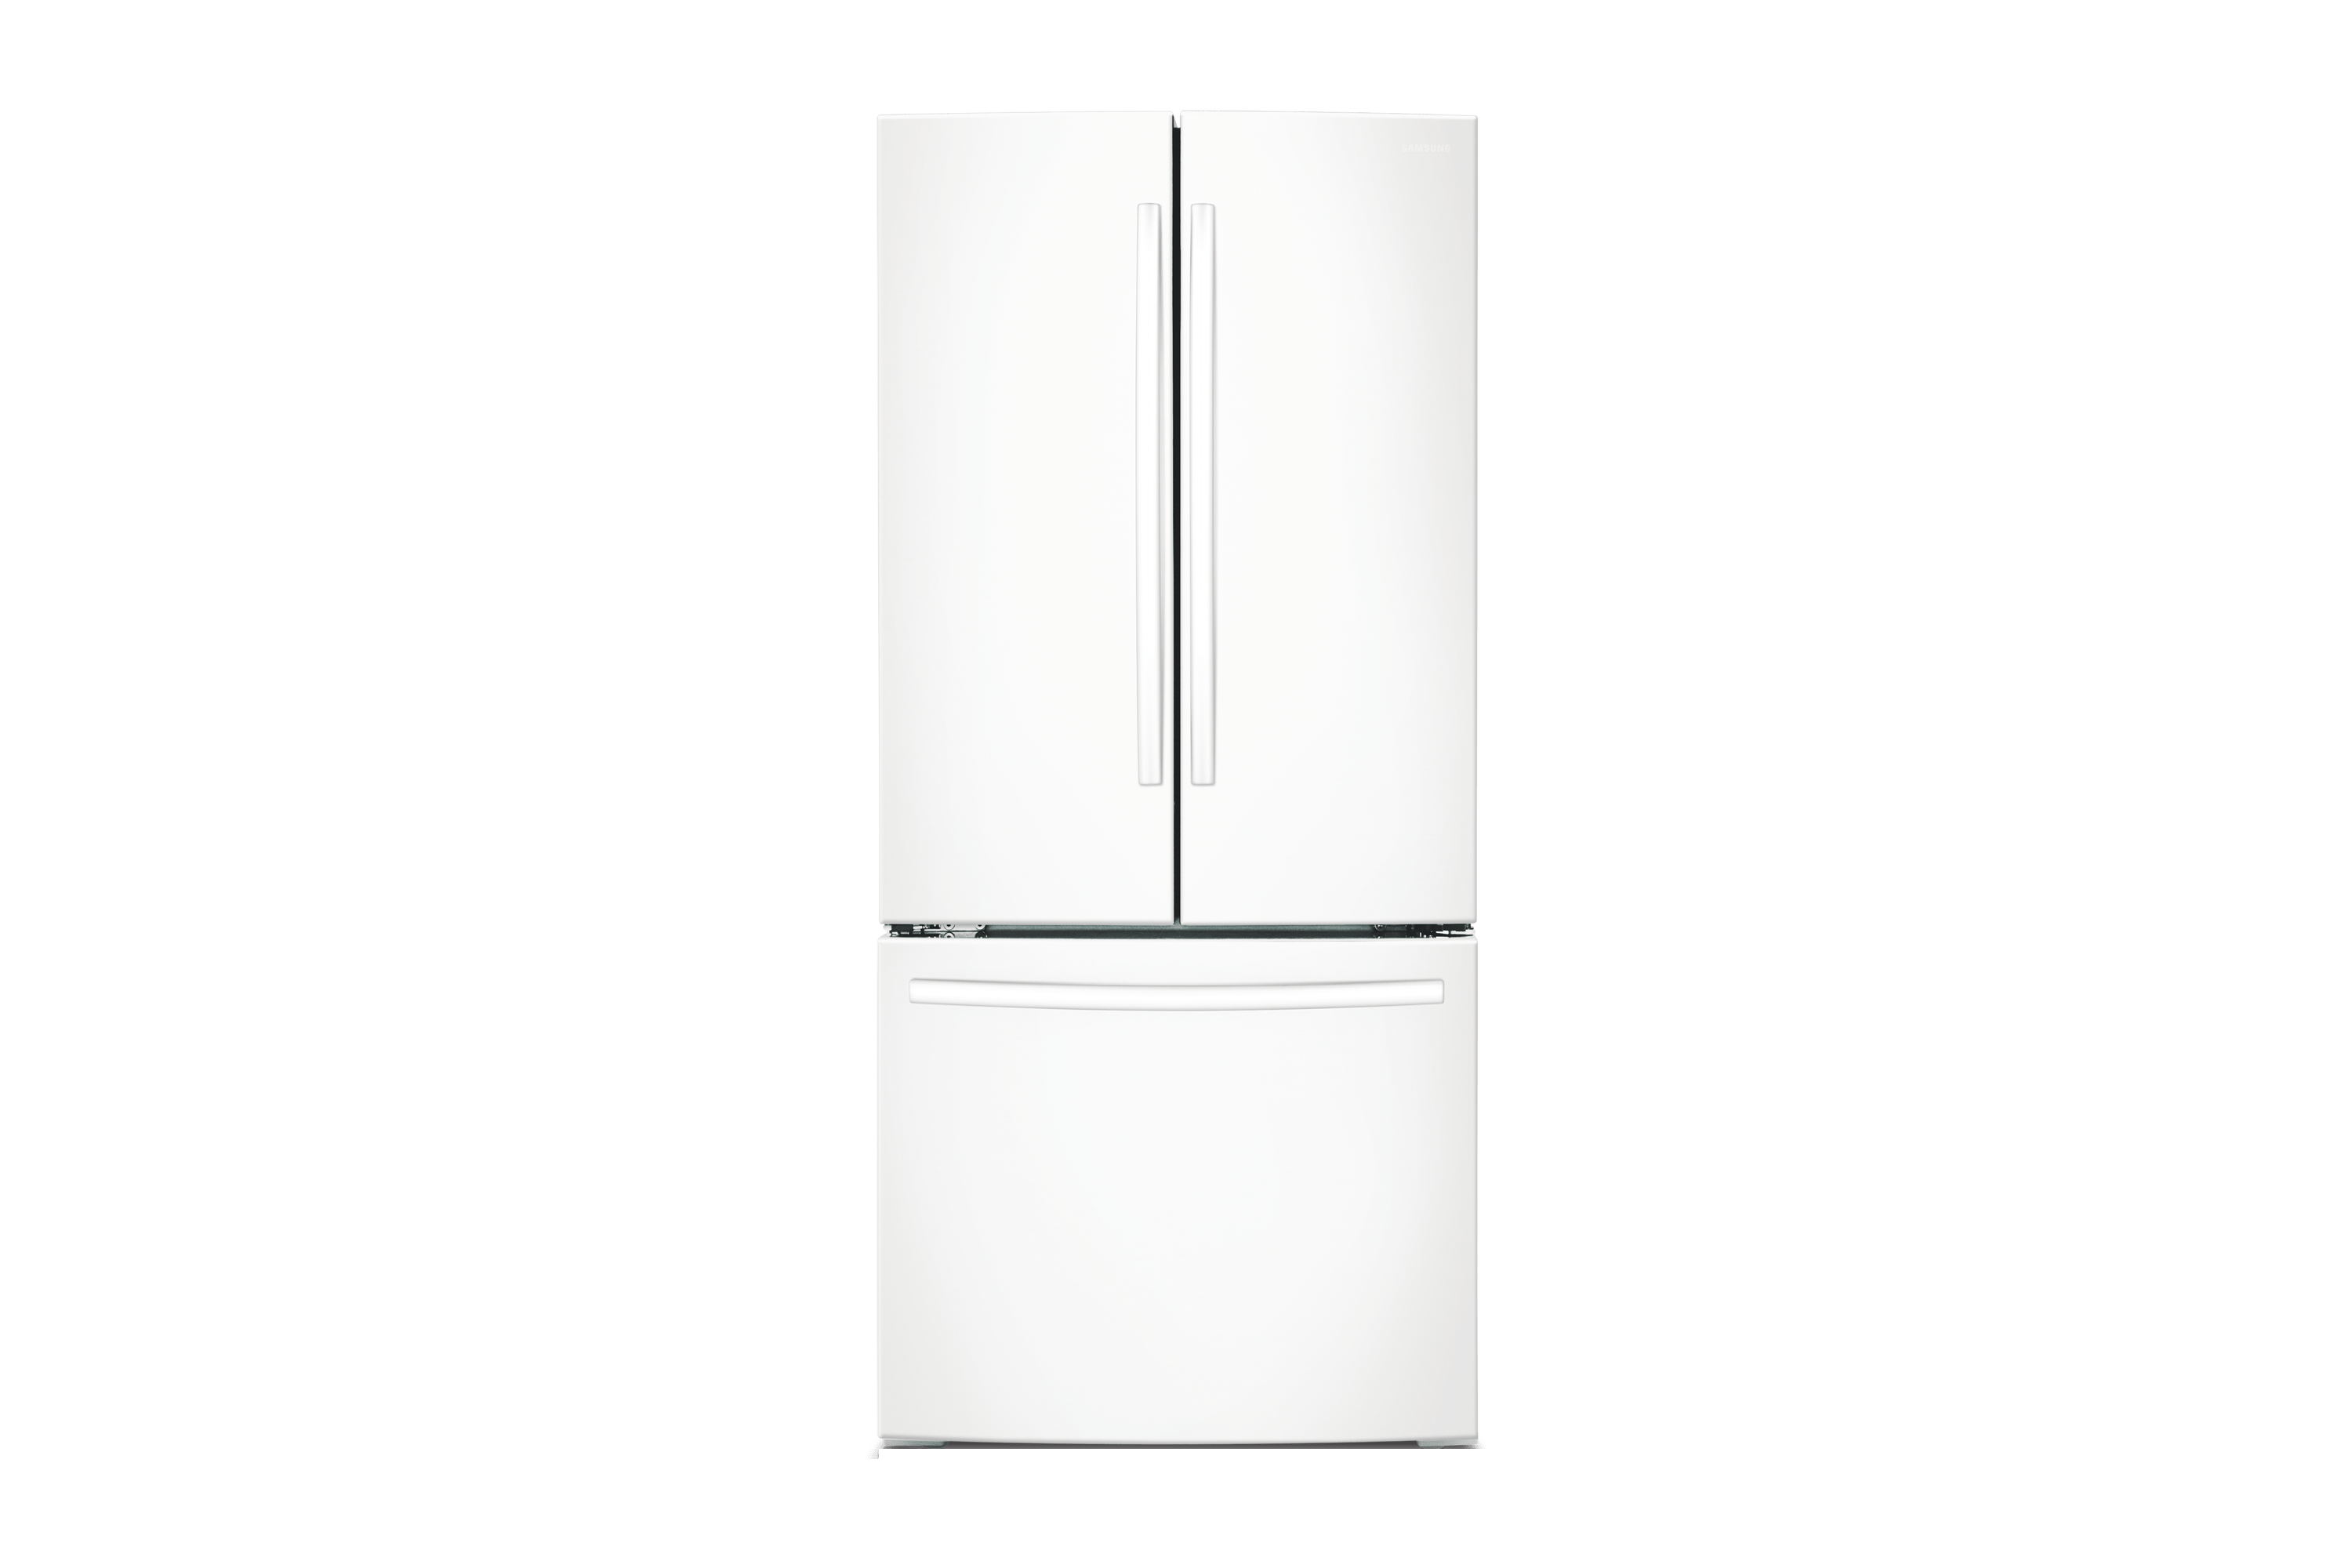 medium resolution of rf220nctaww french door refrigerator with digital inverter technology 21 6 cu ft